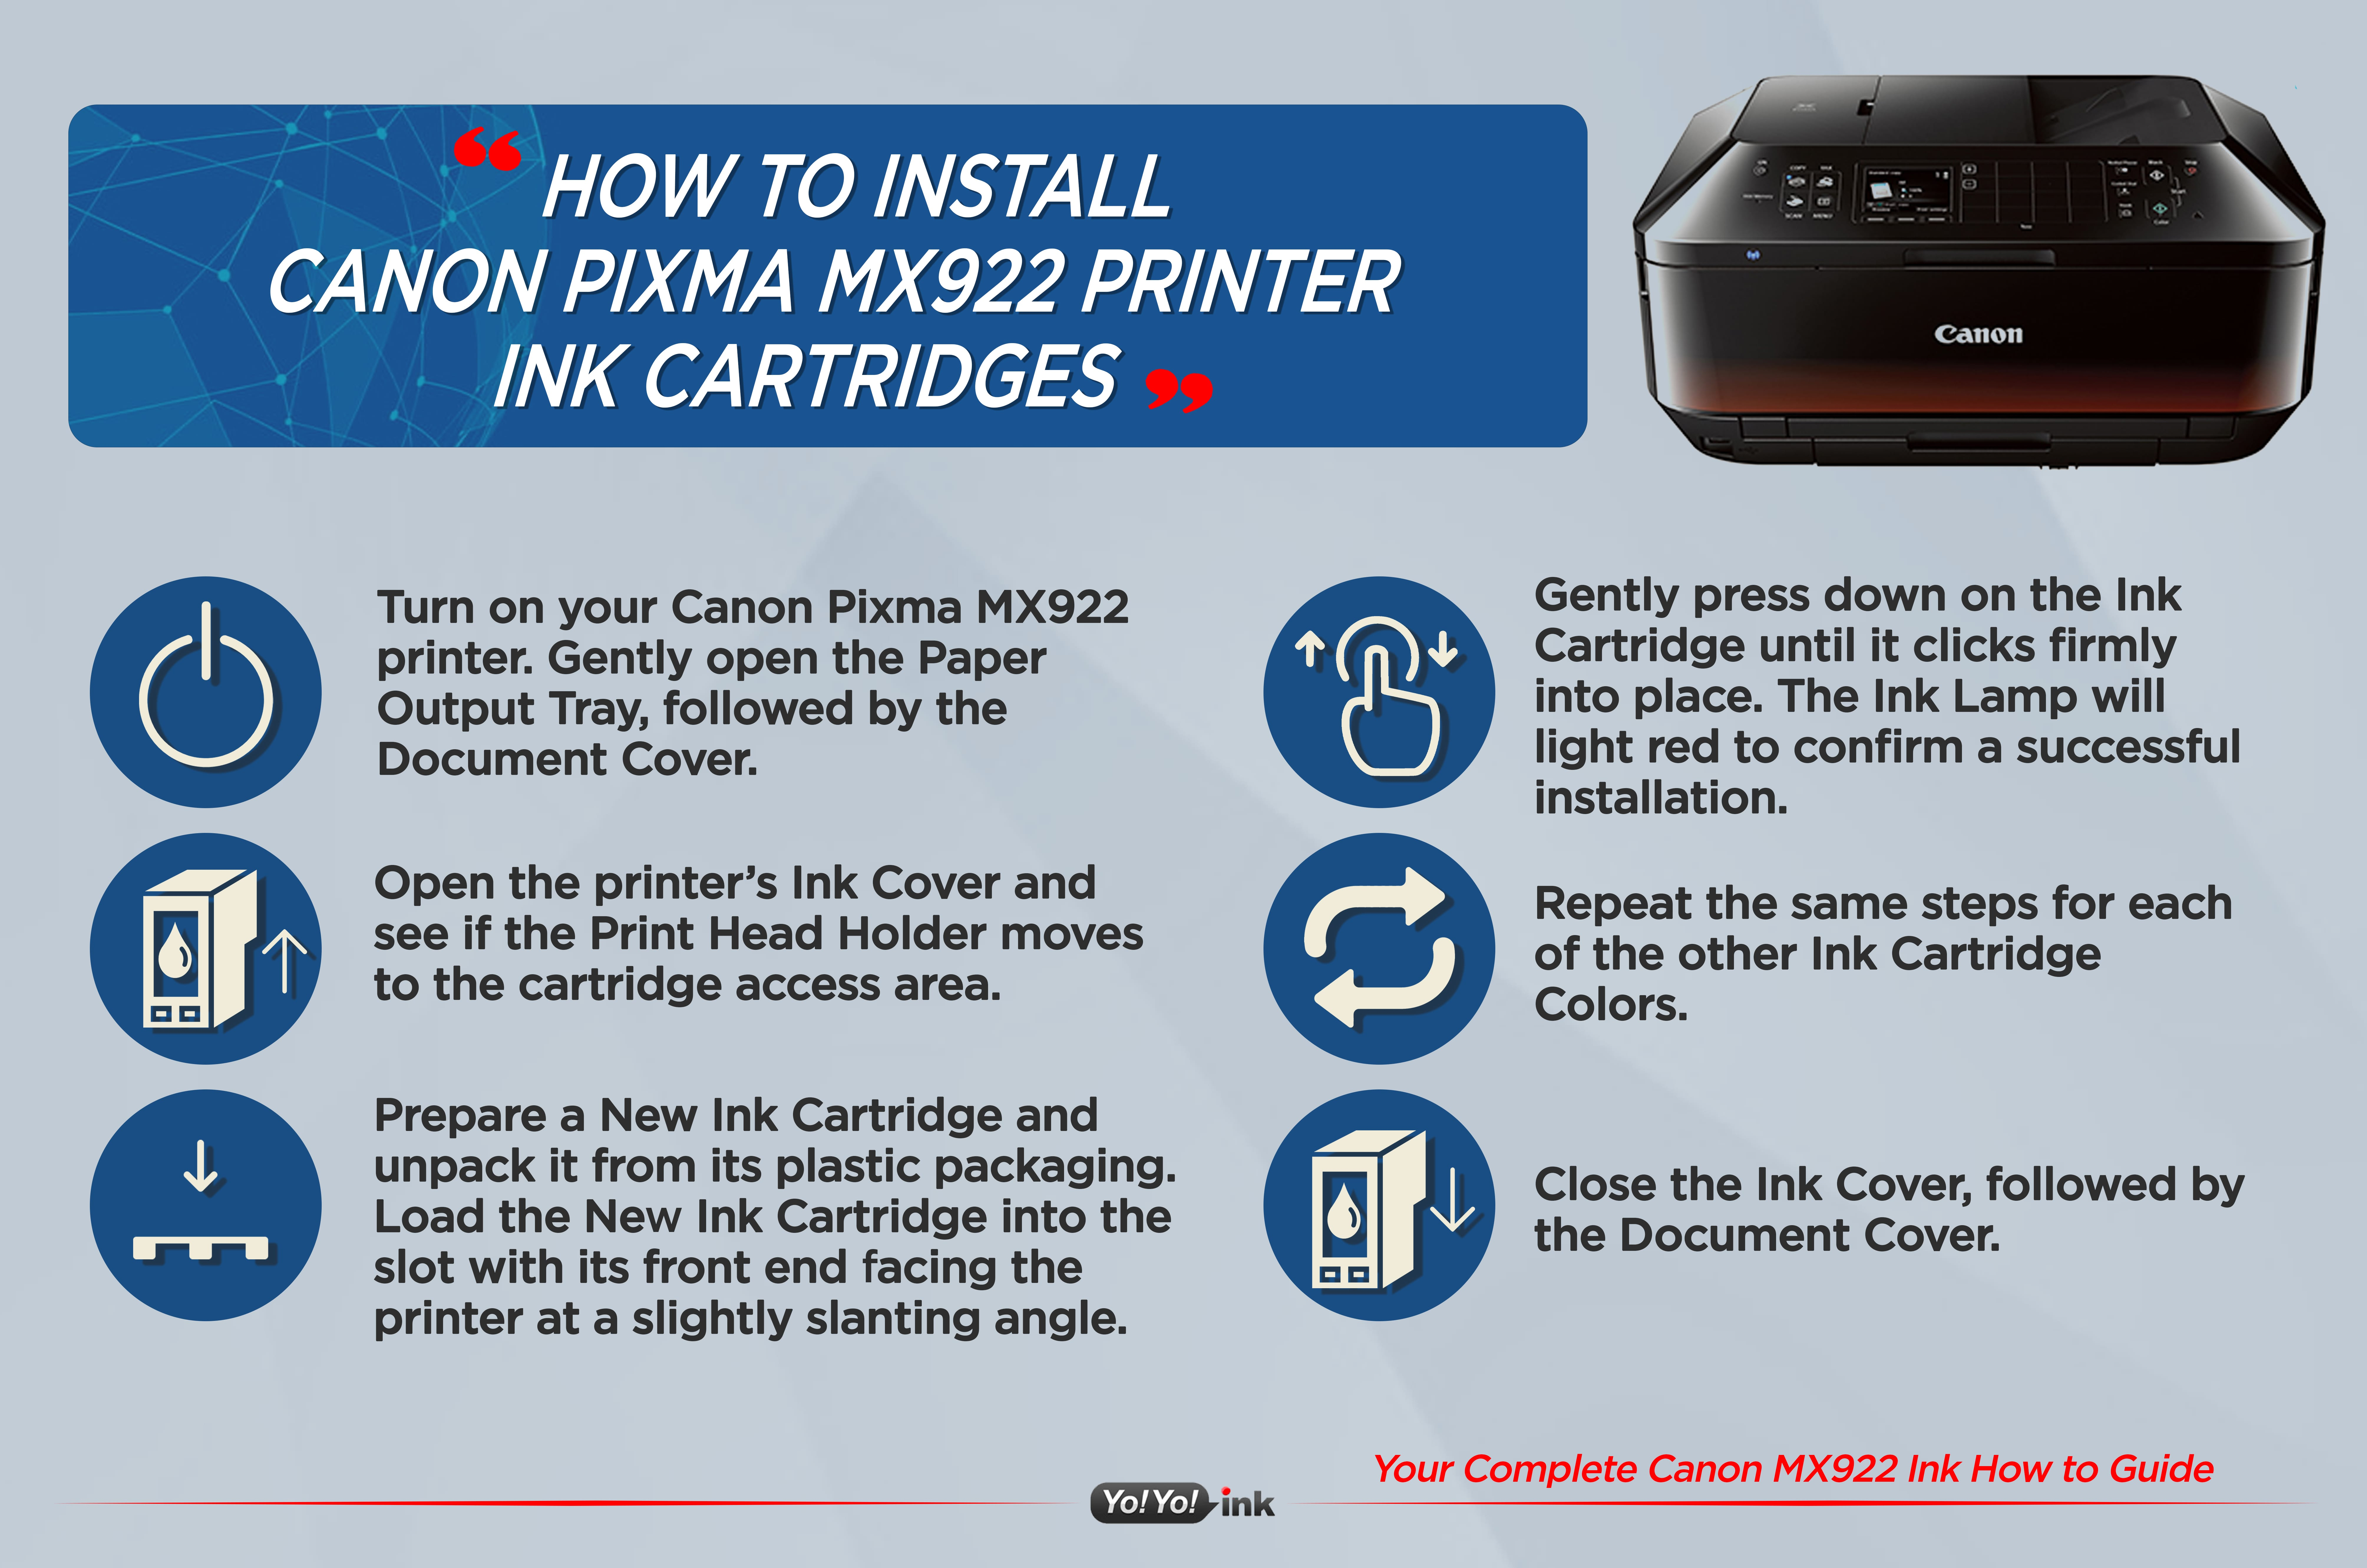 Your Complete Canon MX922 Ink How to Guide